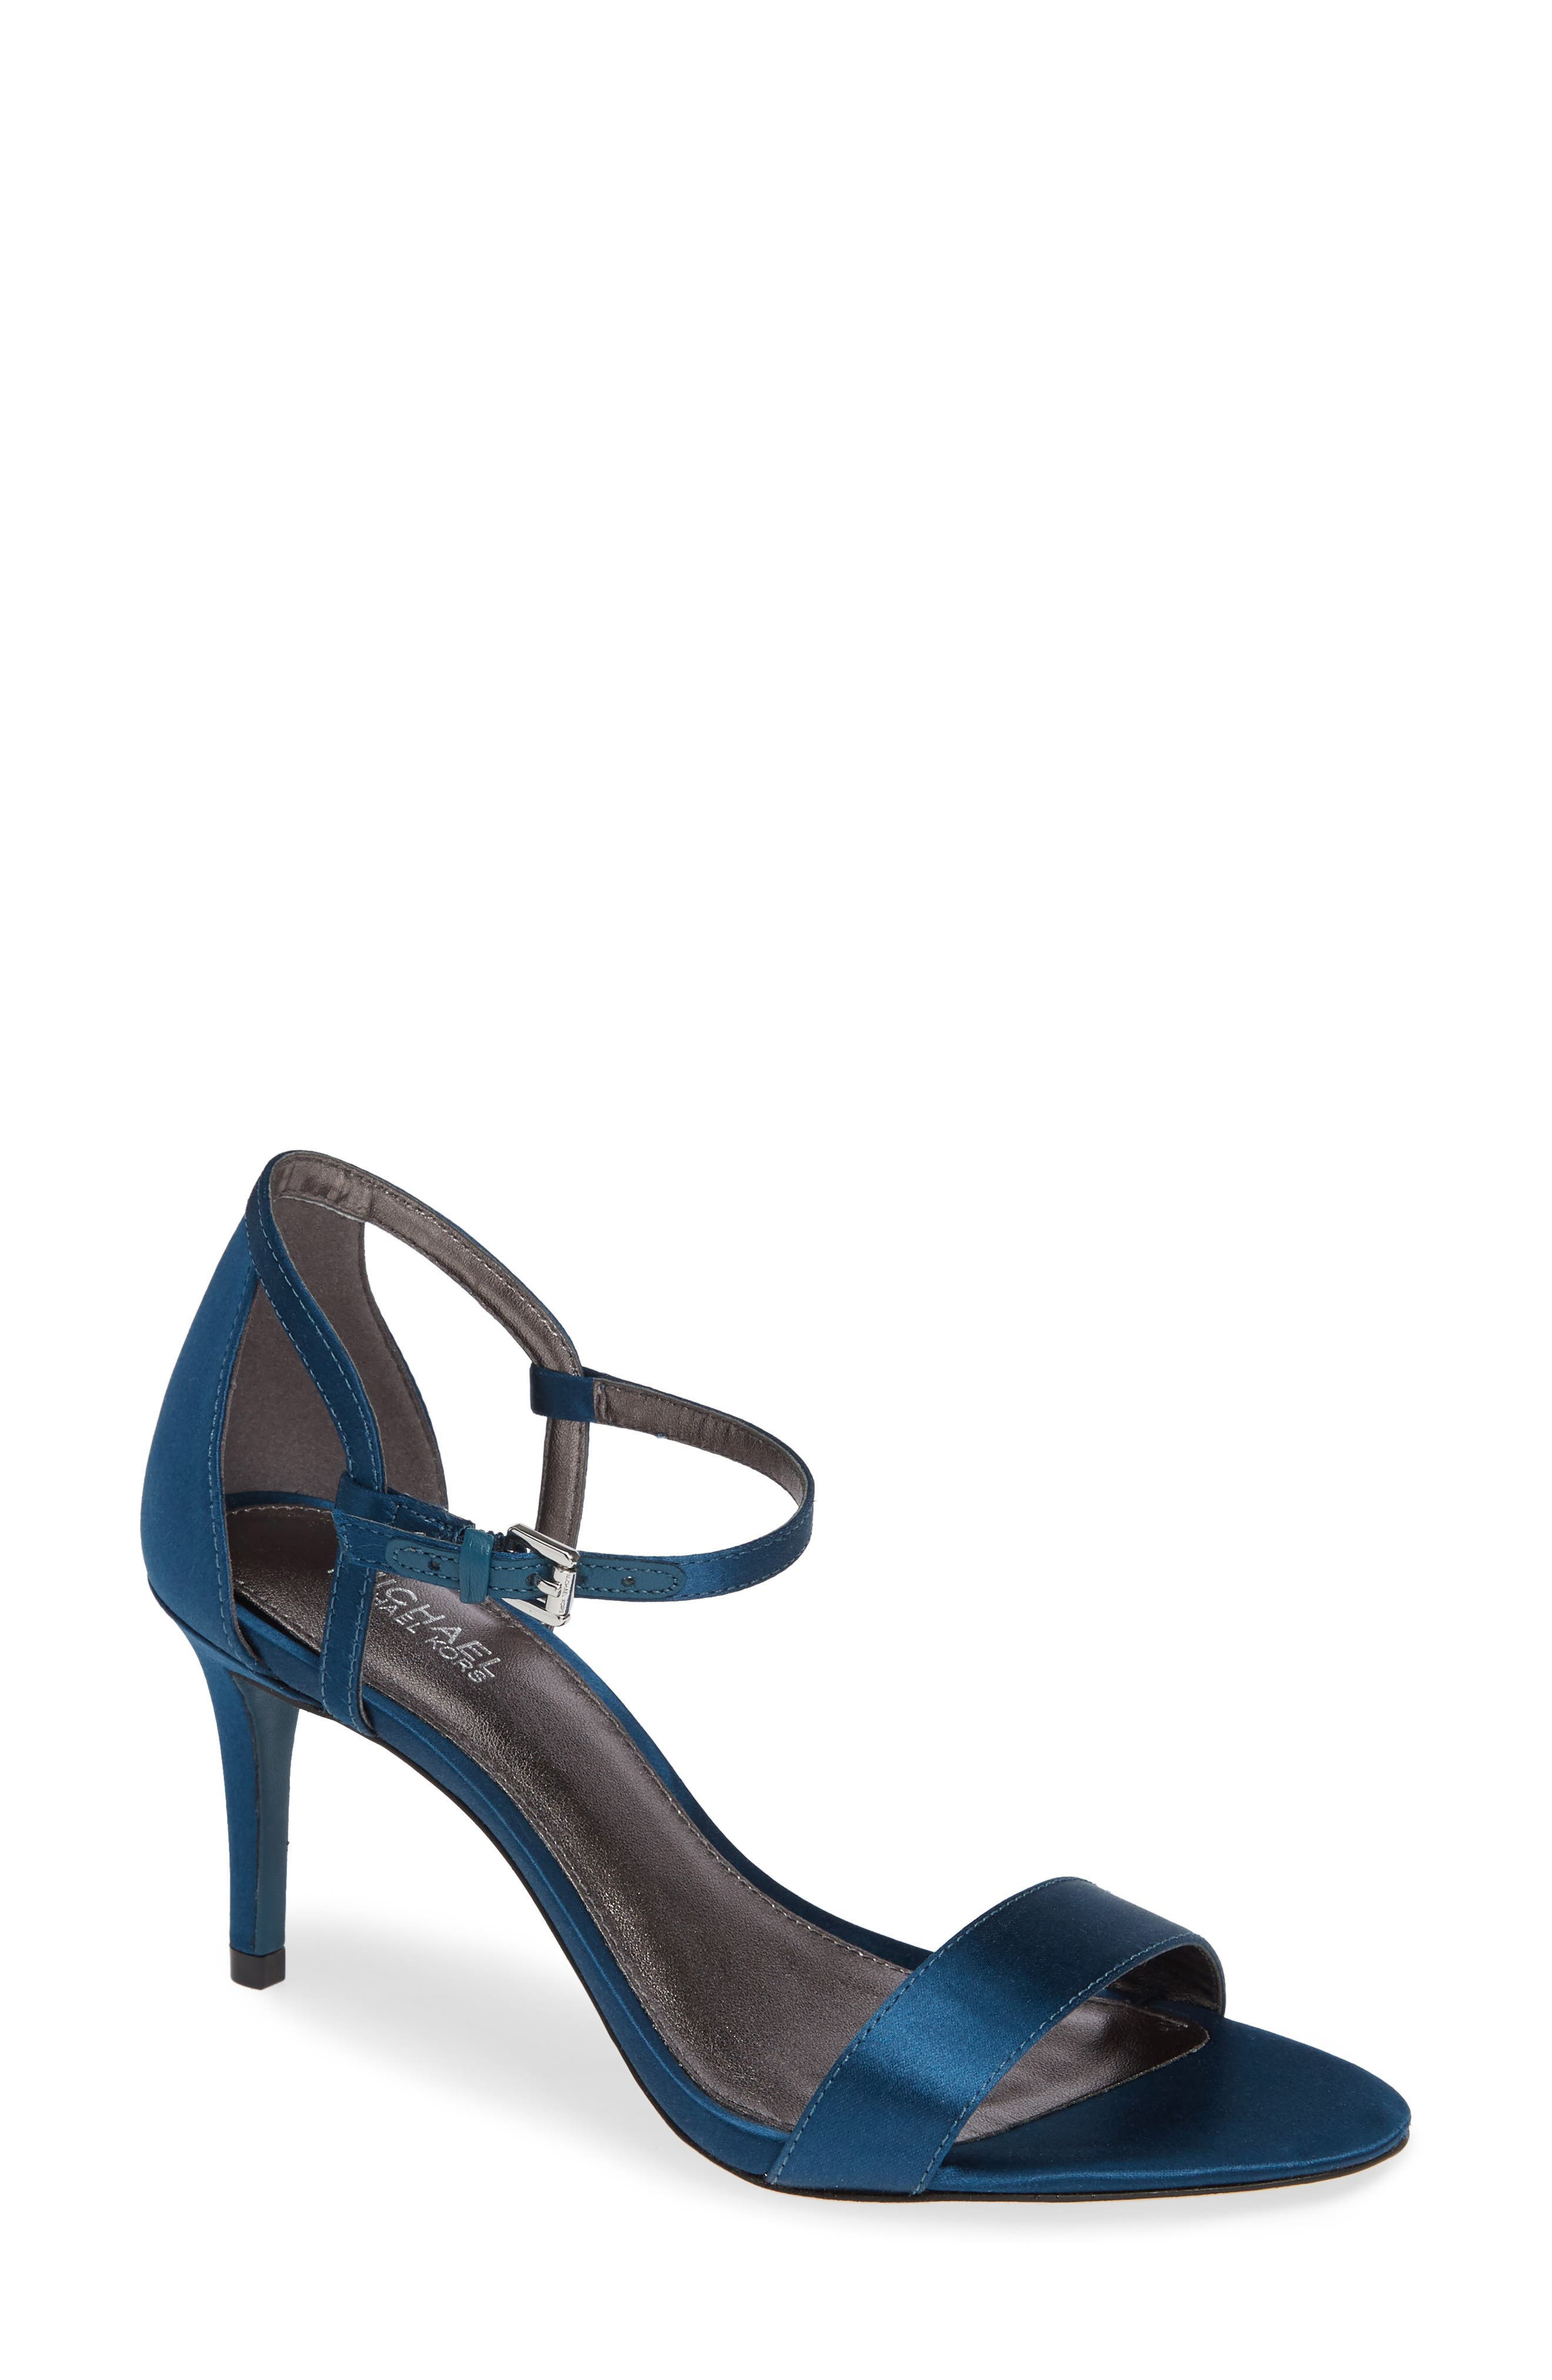 'Simone' Sandal,                         Main,                         color, LUXE TEAL